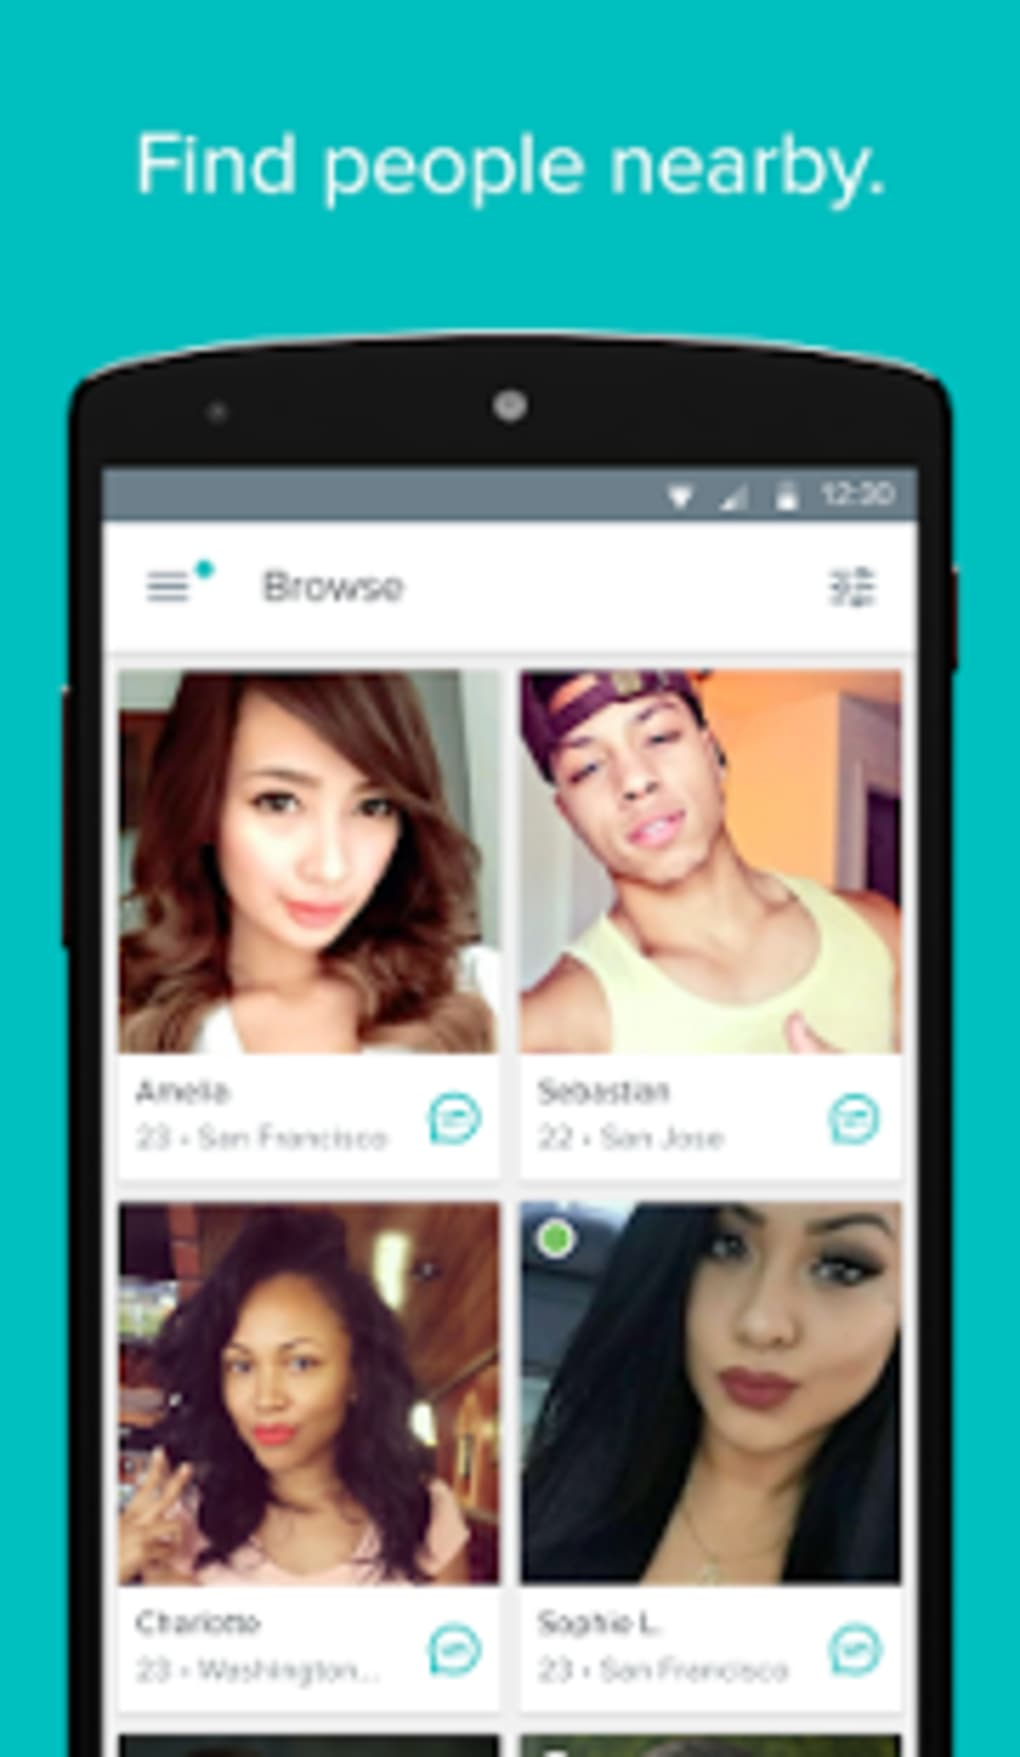 Populaire dating app voor Android